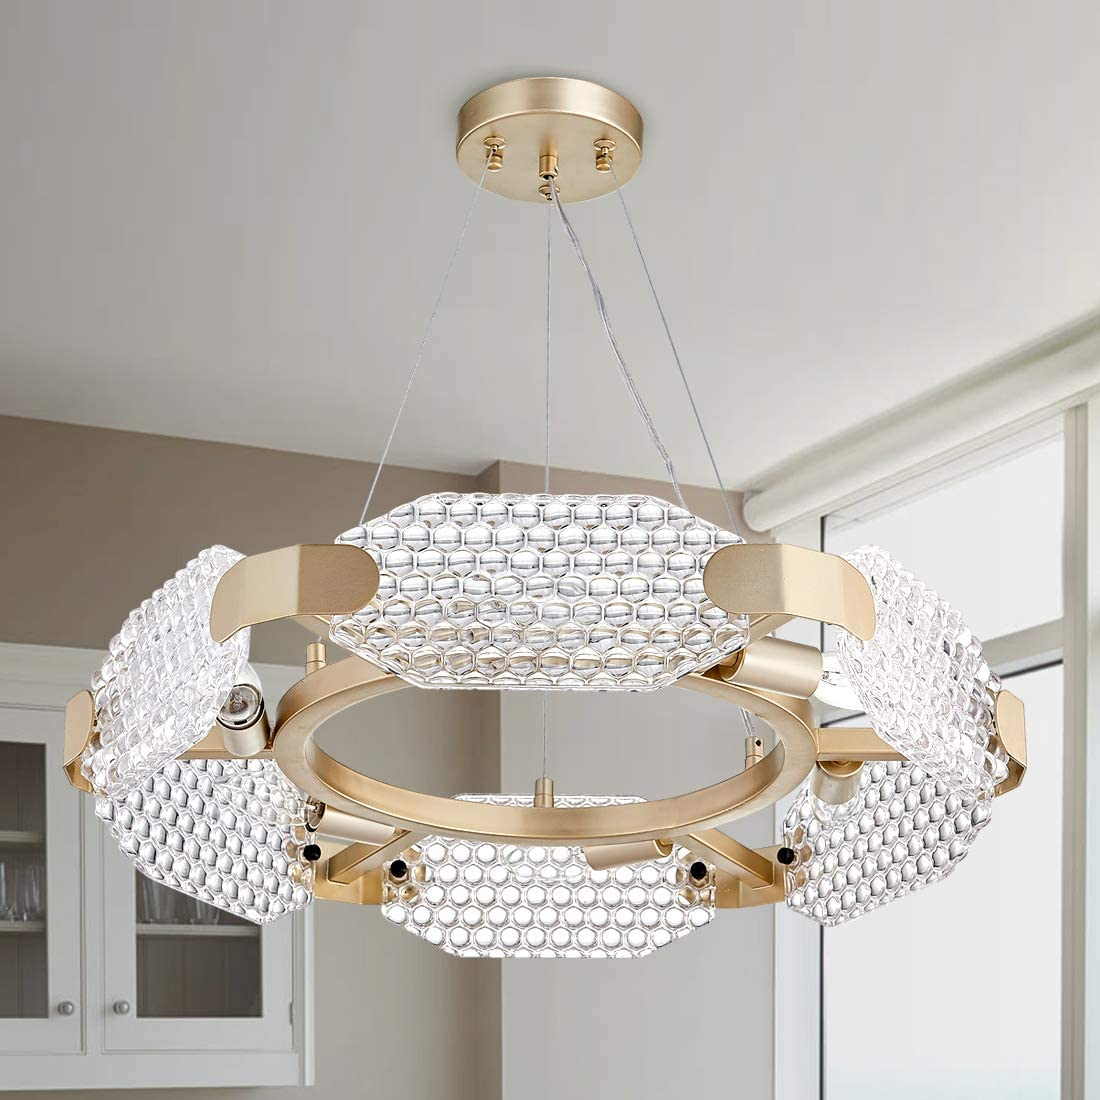 TZOE Crystal Pendant Light Modern Chandelier 6-Light Round Chandeliers,Gold Metal Clear Glass,Crystal Chandelier for Kitchen Island,Foyer,Dining Rooms,Bedroom,Liveing Room,Width 22.4 Inch